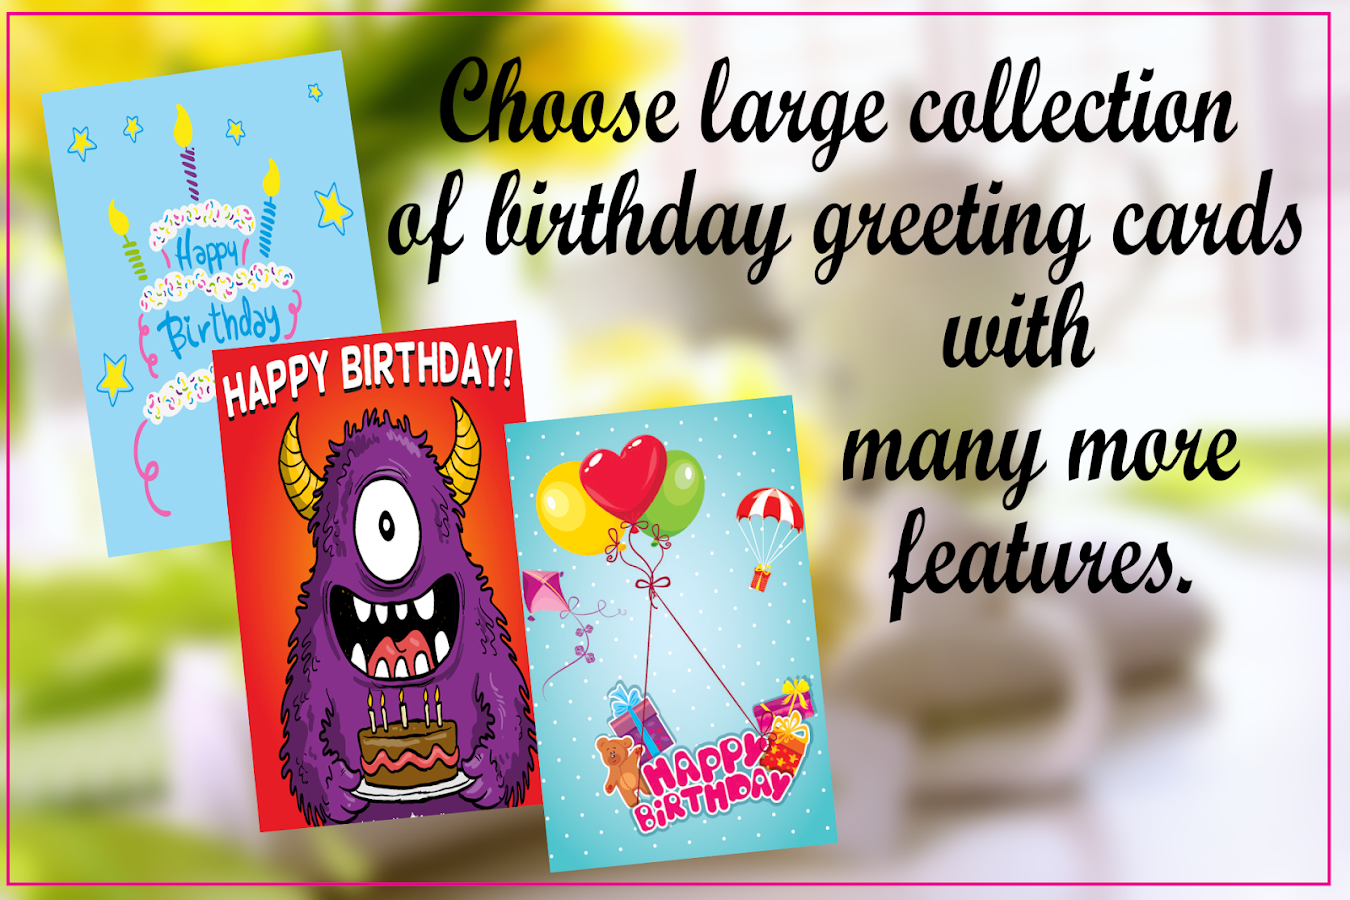 Birthday Greeting Card Maker Android Apps on Google Play – Images of Birthday Greeting